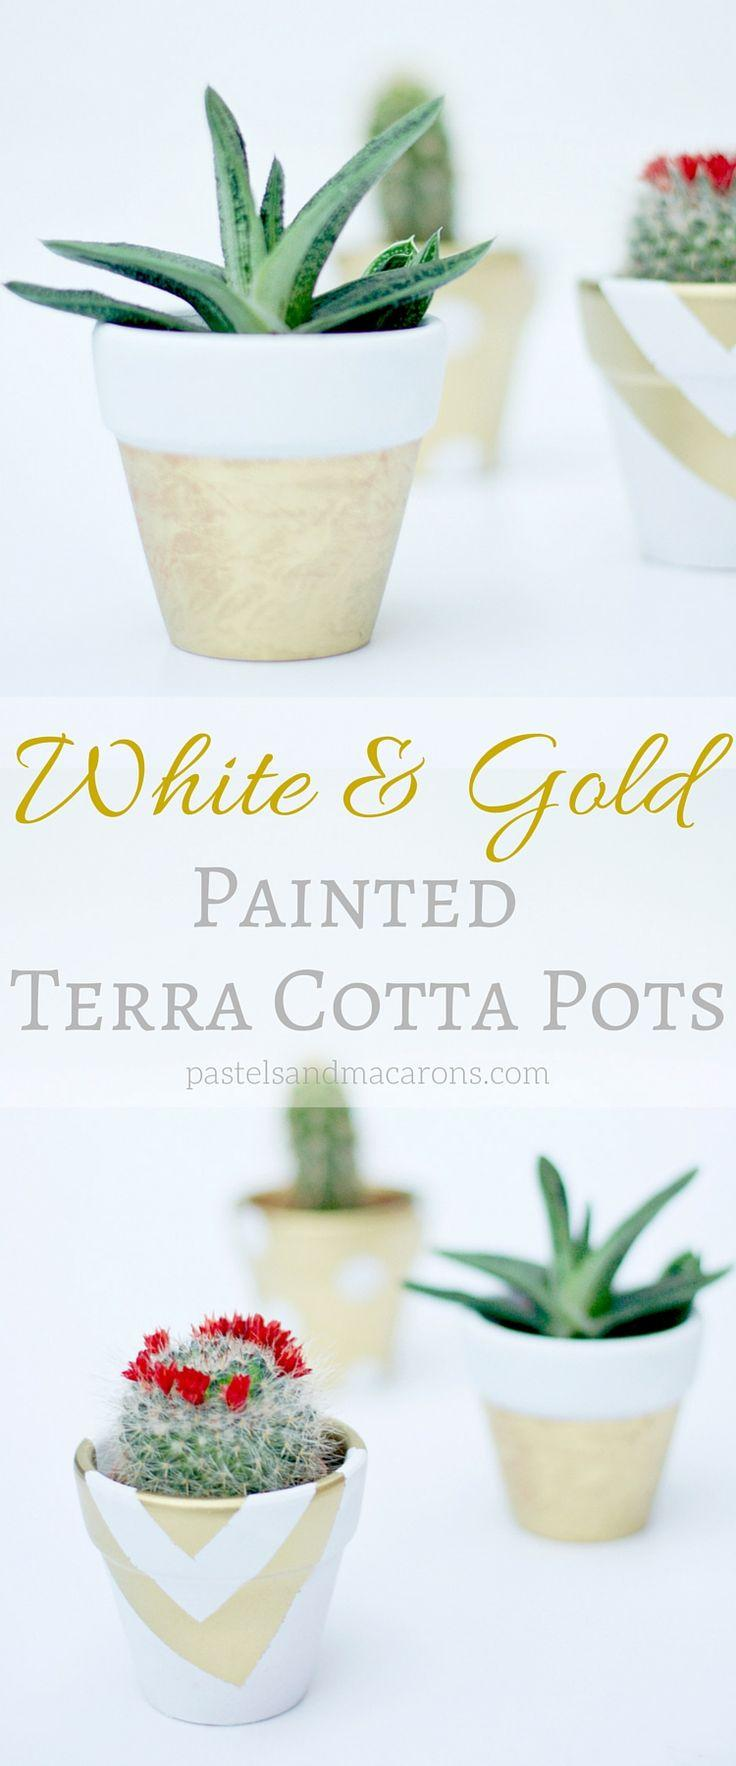 Mariage - White And Gold Painted Terra Cotta Pots